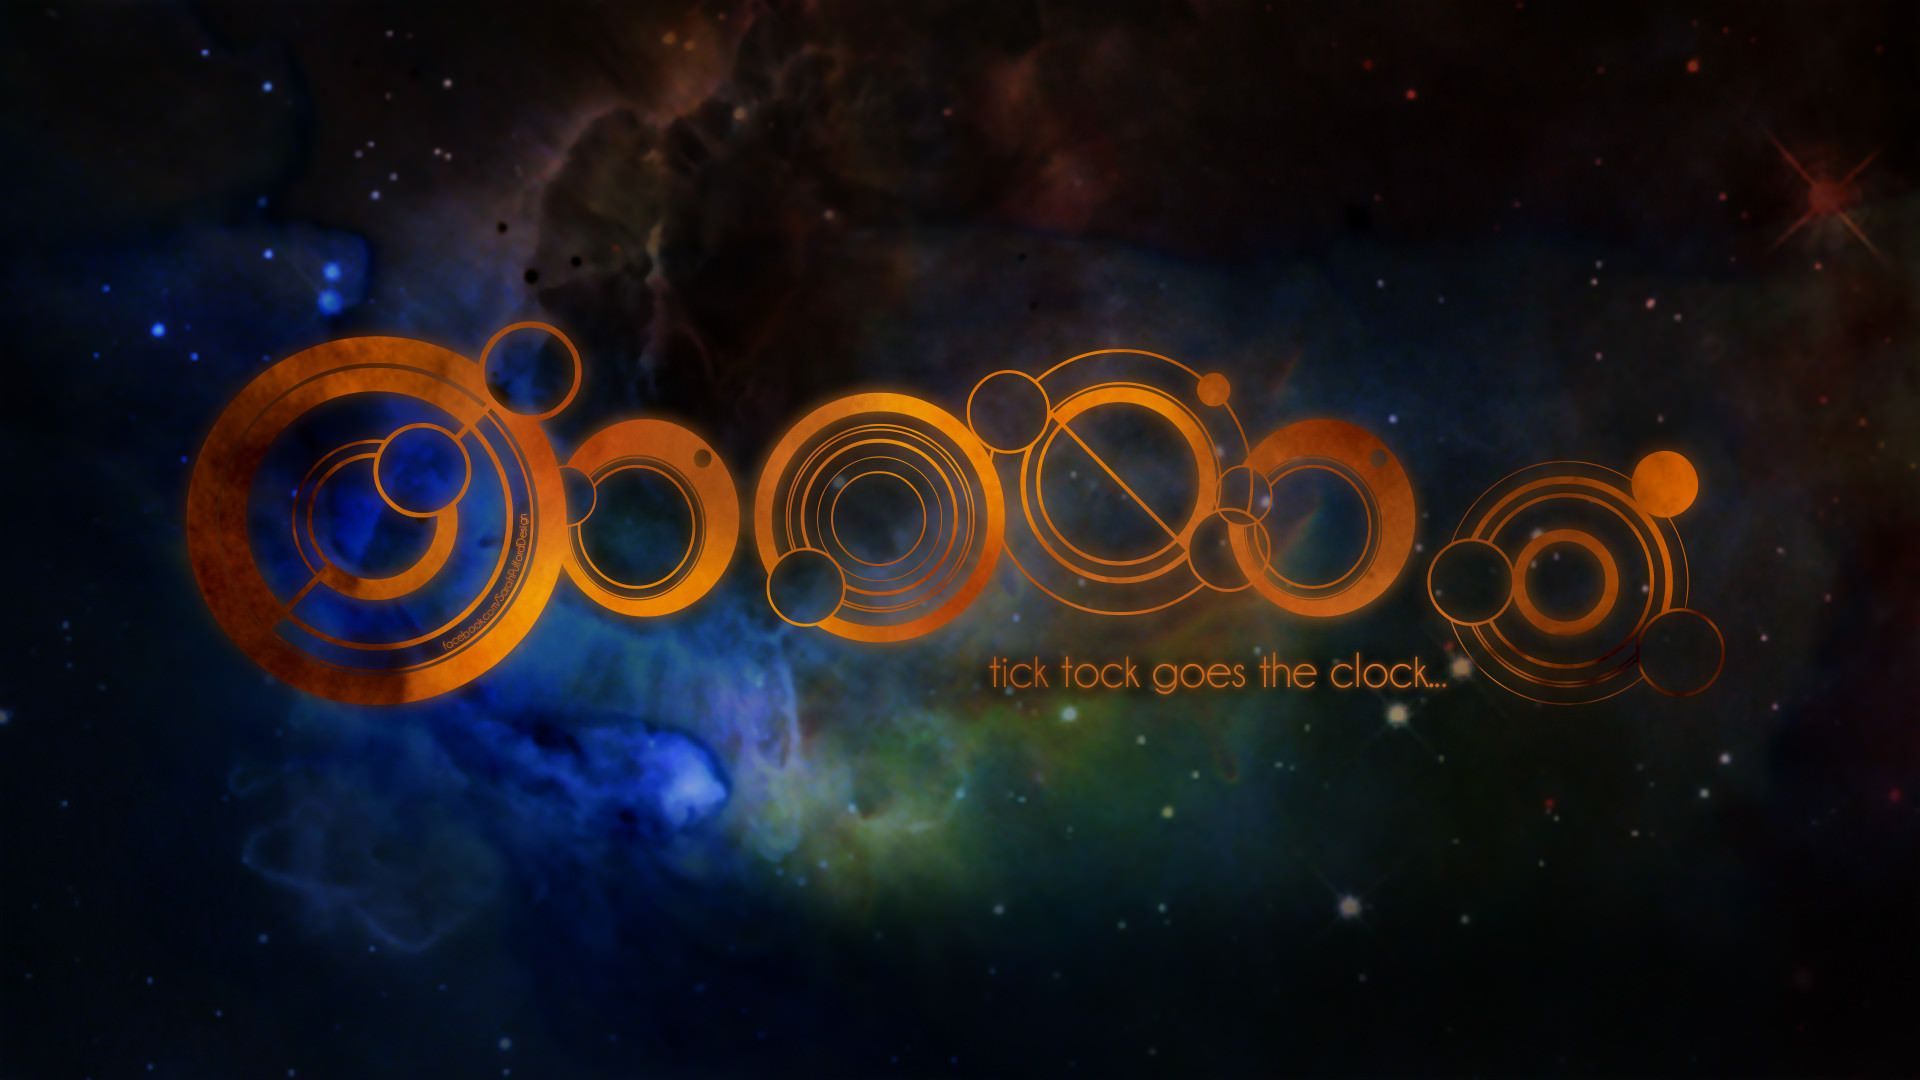 84 Animation Wallpapers For Mobile Phone And Desktop Pc Doctor Who Wallpaper Dr Who Wallpaper Doctor Who